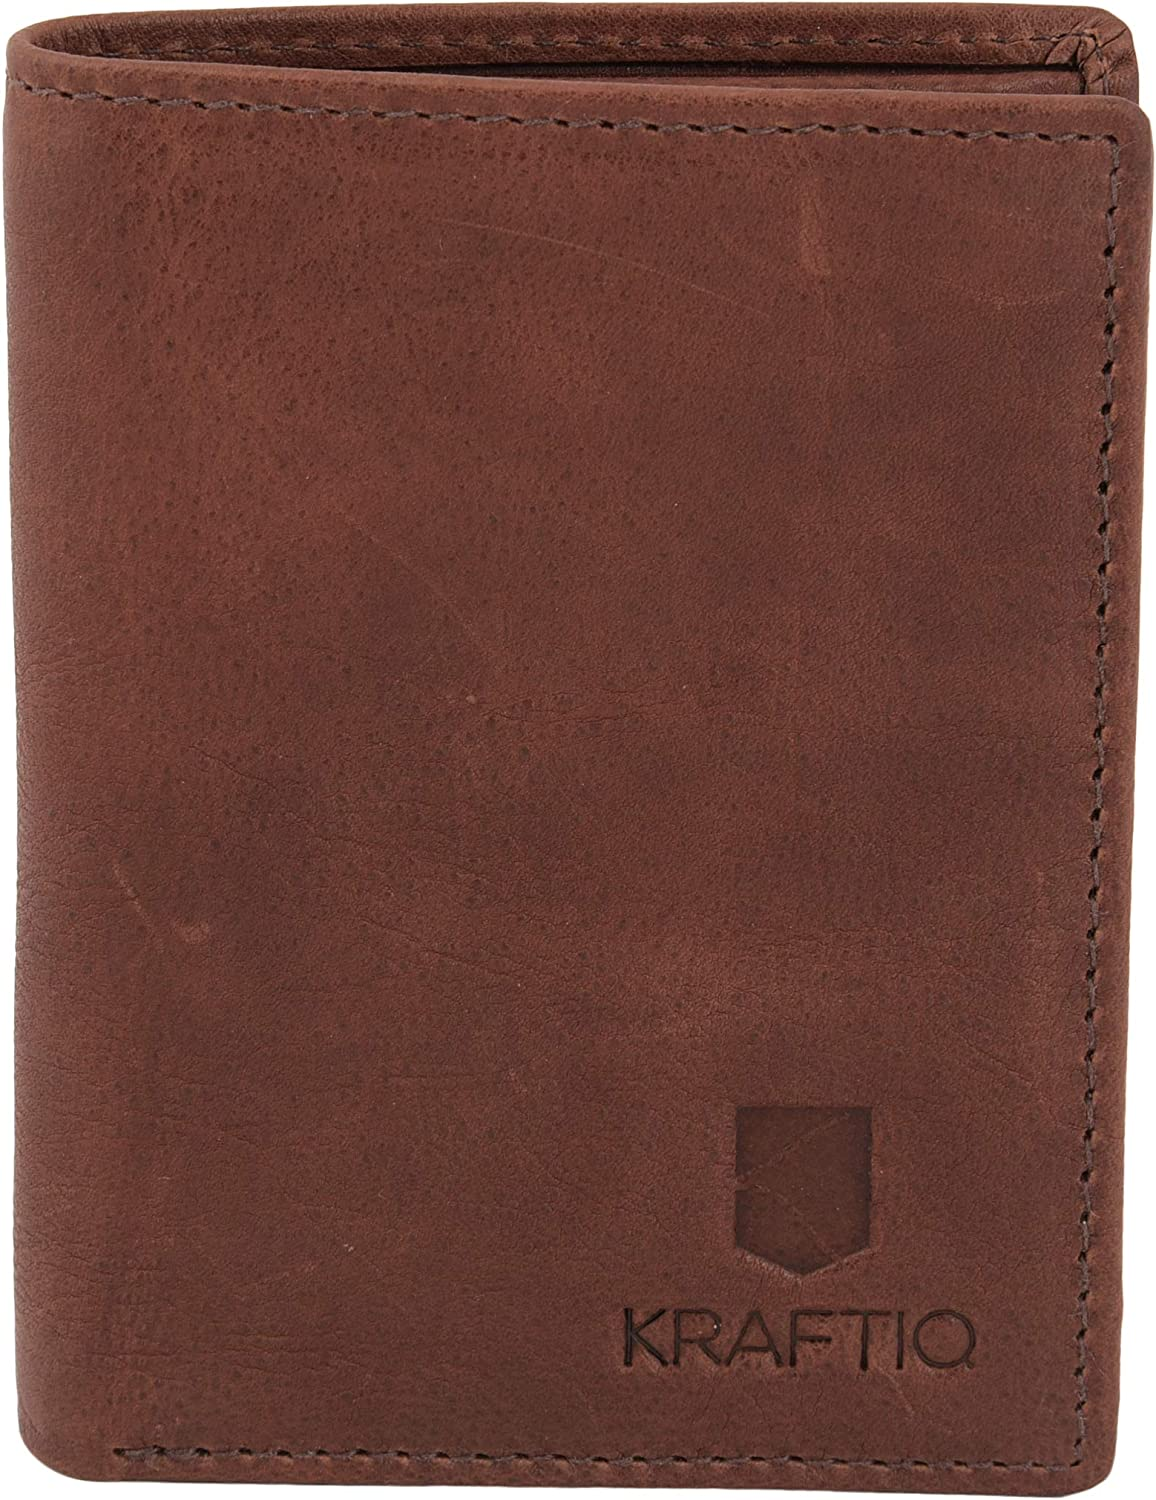 ROMAN- RFID Secured, Vegetable Tanned Brown Leather Credit Card Wallet